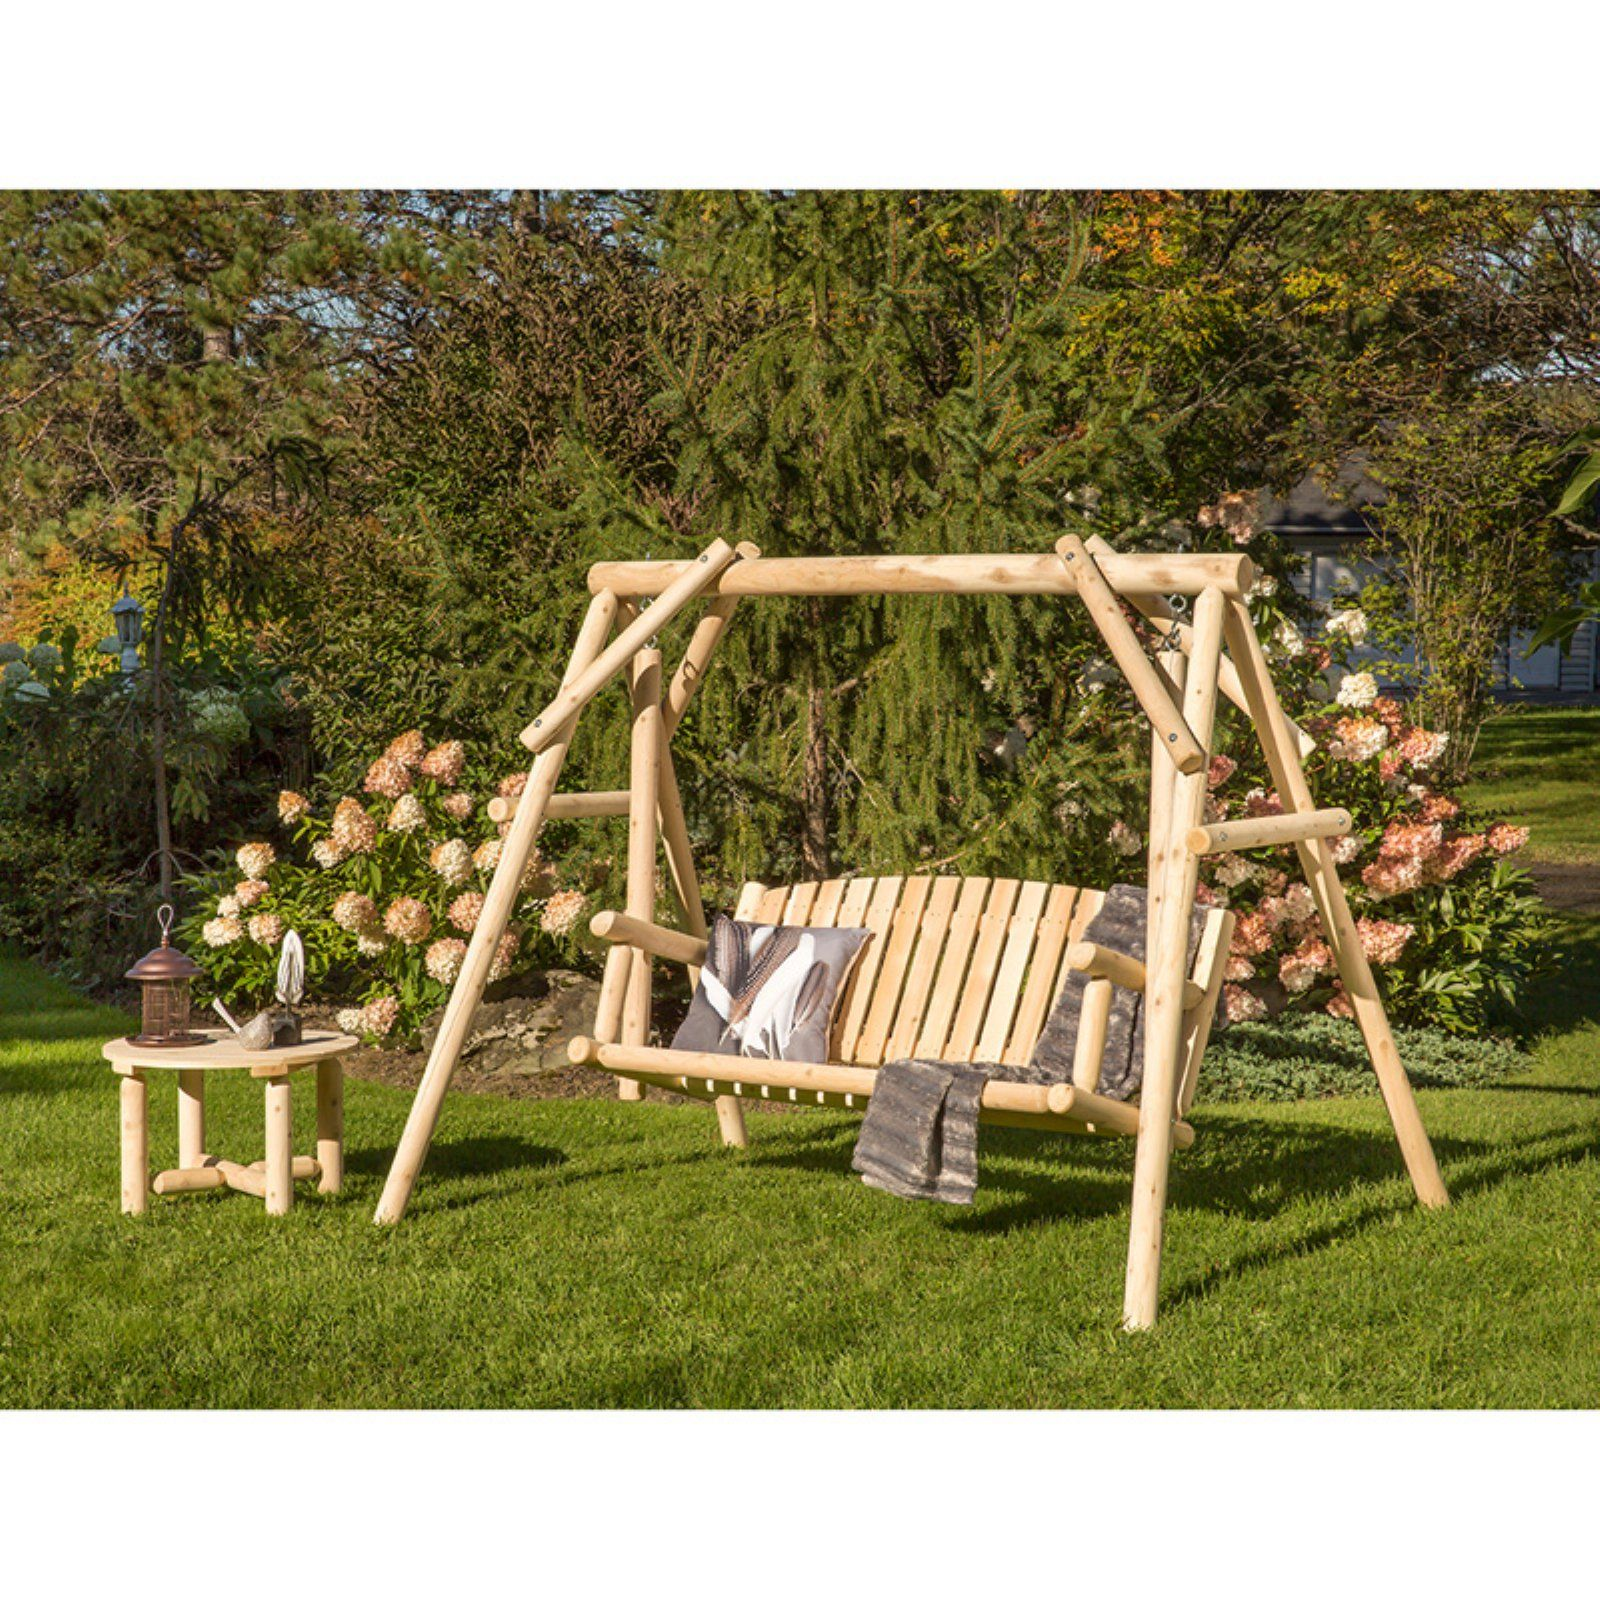 Bestar White Cedar Porch Swing With Side Table In 2019 Products